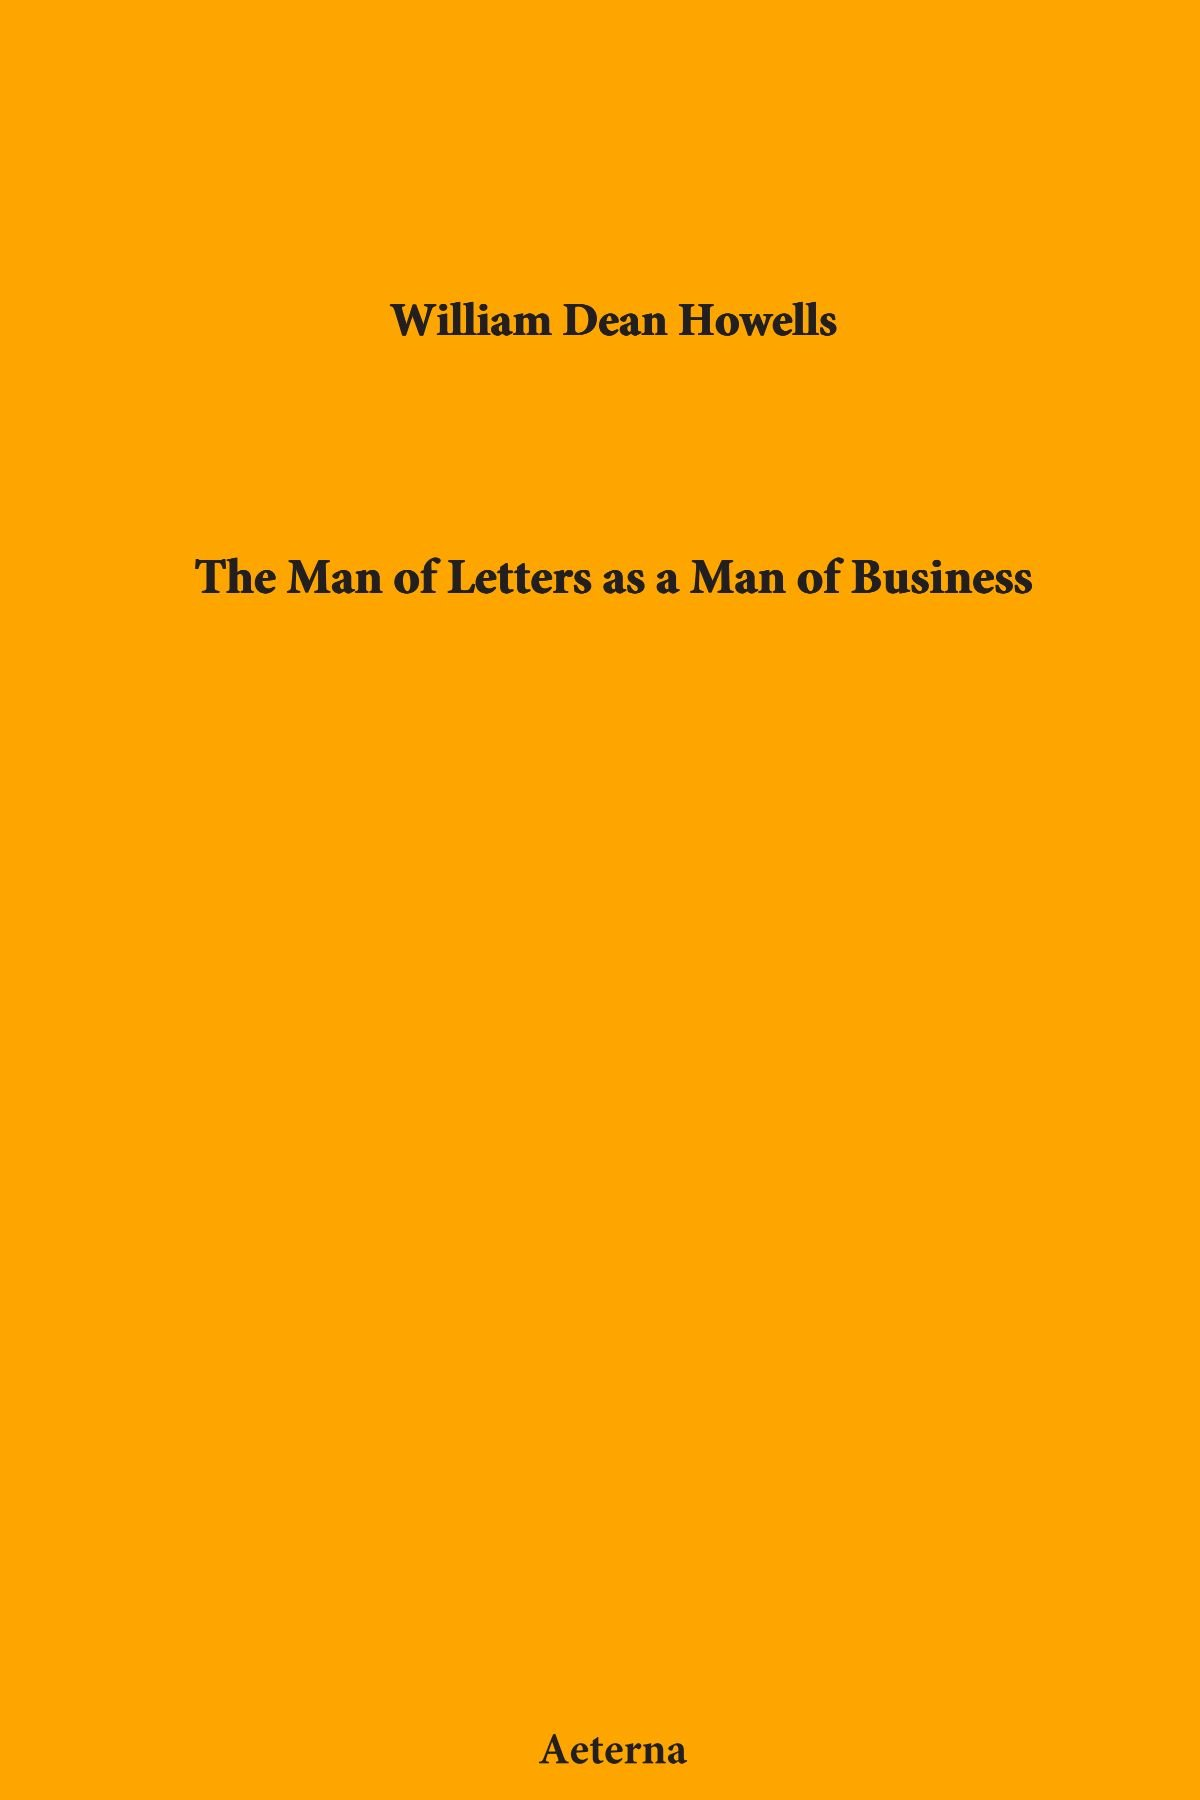 Download The Man of Letters as a Man of Business ebook